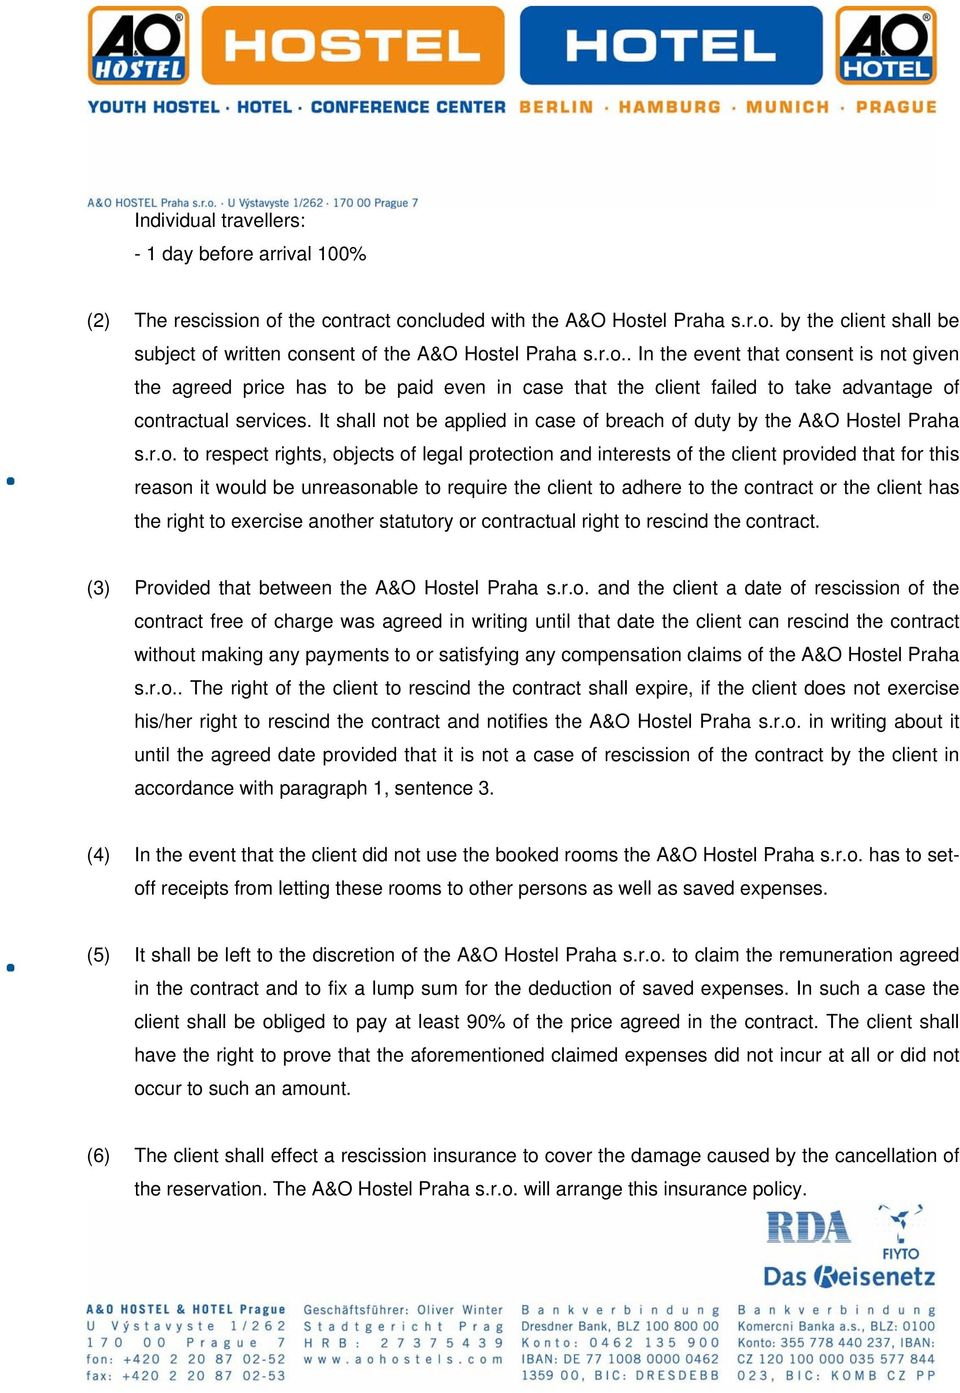 de974275a956 General terms and conditions of the contract for accommodation in ...